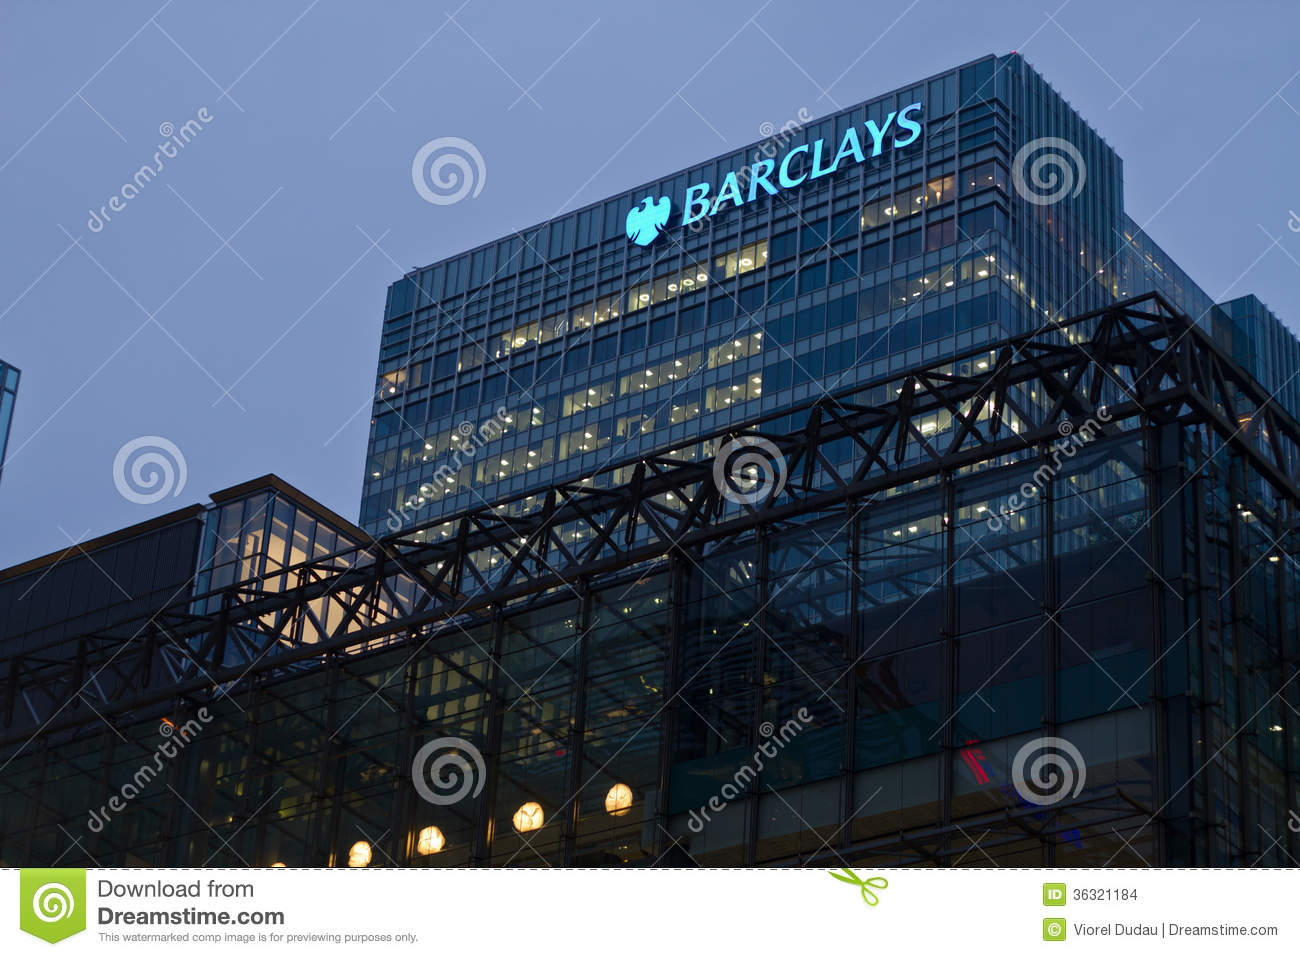 barclays editorial stock image